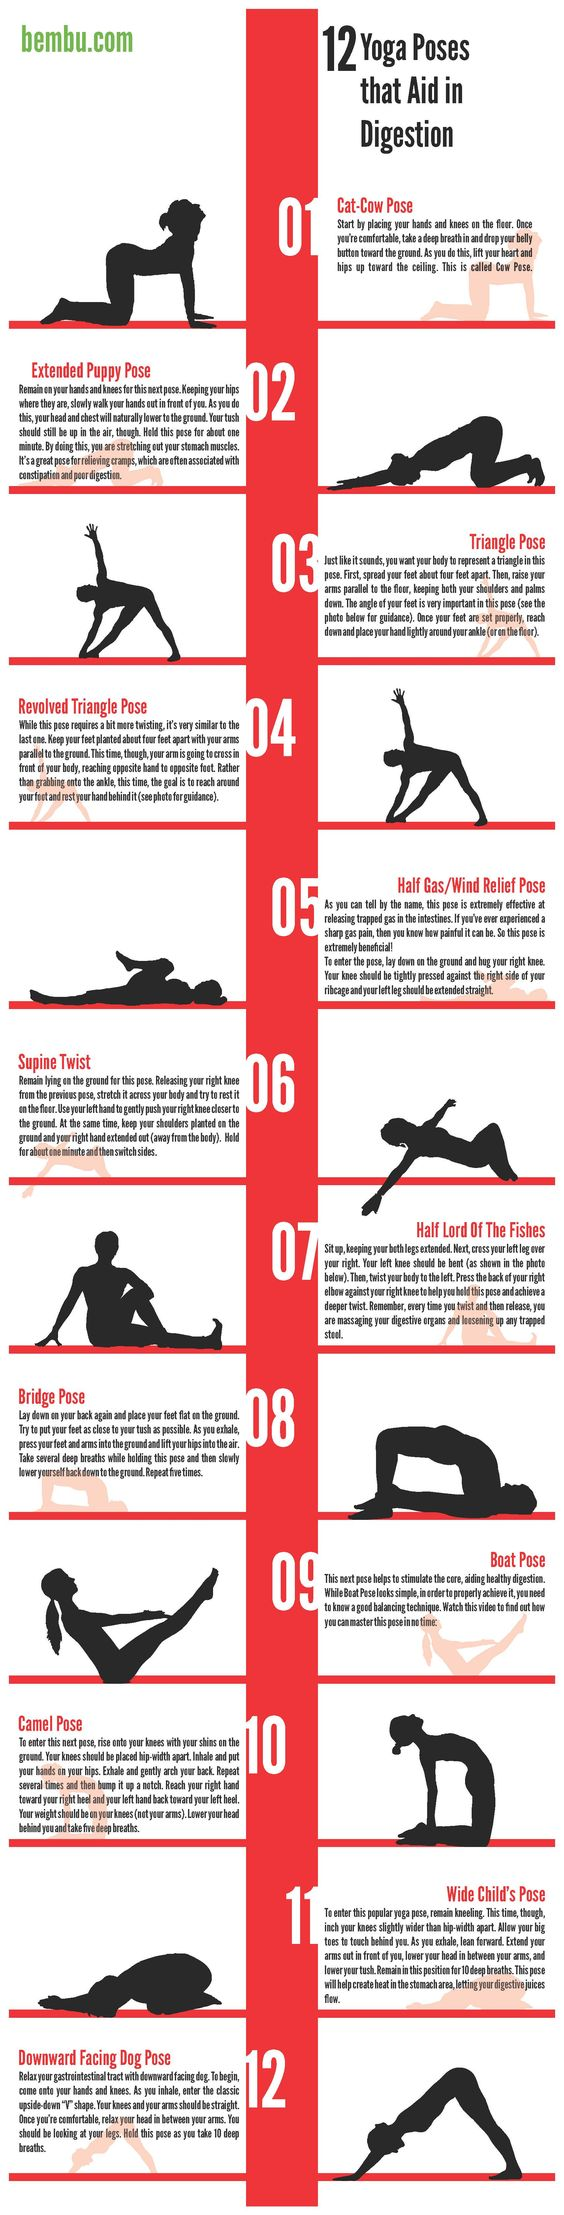 While yoga benefits the body in many different ways (i.e. stress relief, weight loss, and pain relief), it's also one of the best workouts for relieving constipation. With a combination of deep breathing exercises and twisting poses that massage the organs, yoga works your intestinal muscles and helps release any trapped toxic stool. Below, you will find a basic yoga sequence filled with 12 poses that have been known to help improve digestion and relieve constipation.